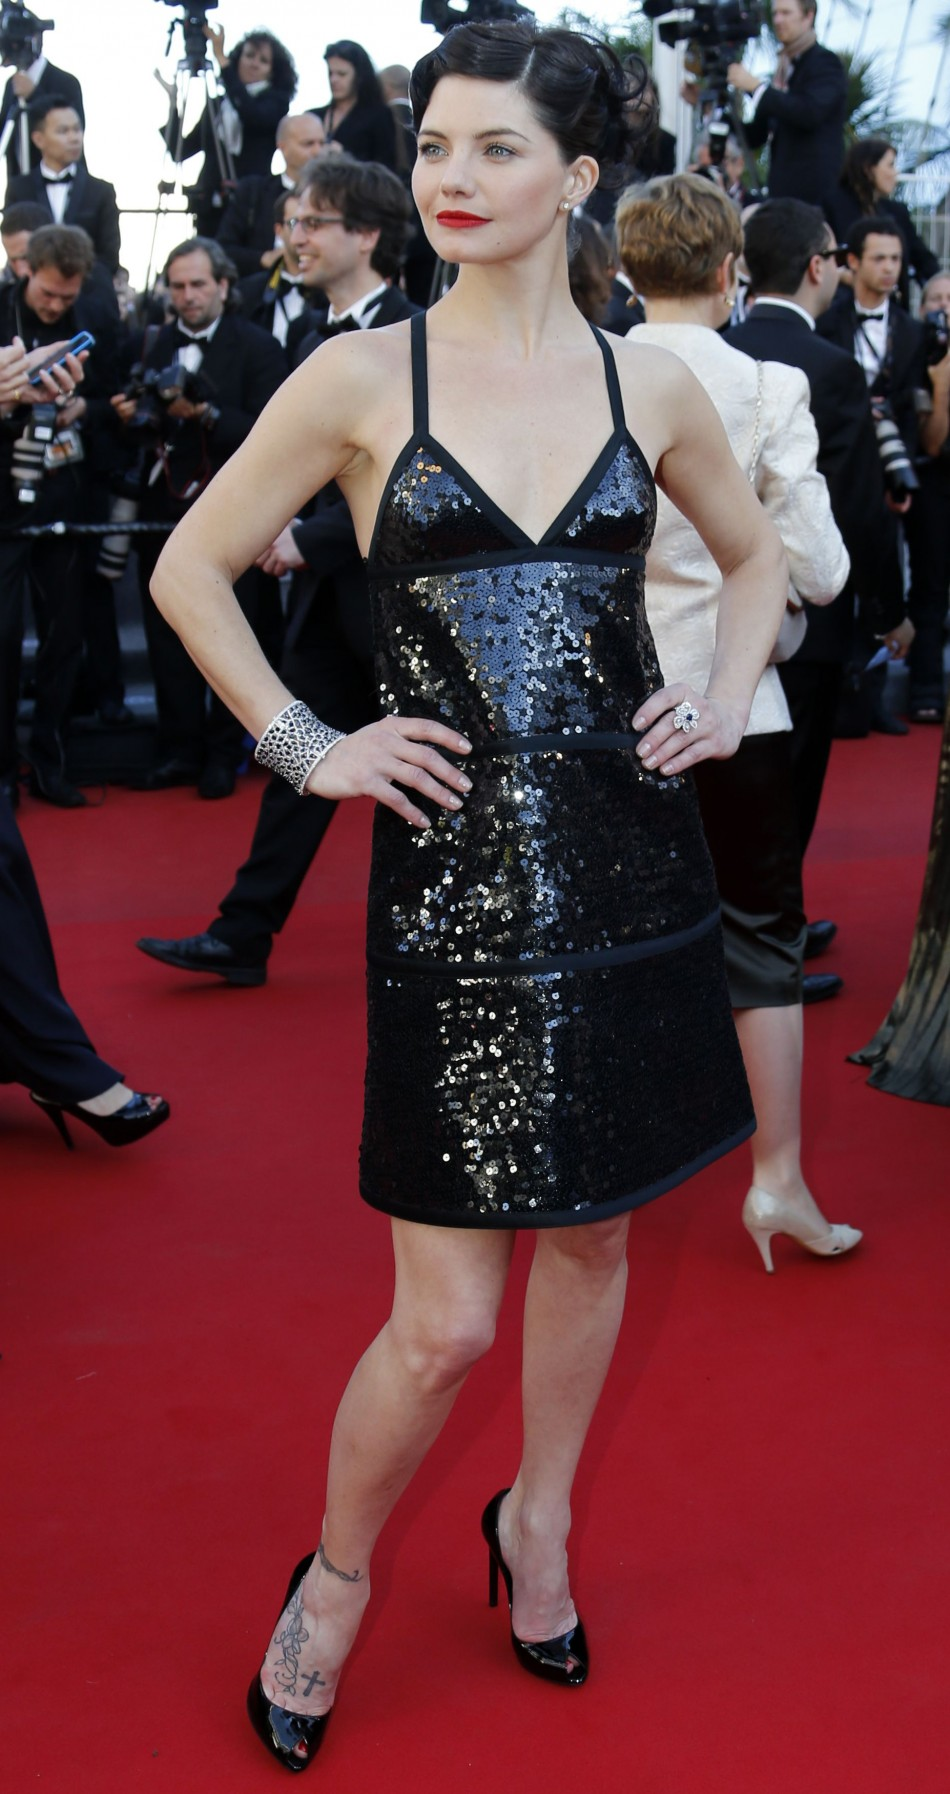 Actress Delphine Chaneac poses on the red carpet as she arrives for the screening of the film 'Le Passe' (The Past) in competition during the 66th Cannes Film Festival in Cannes May 17, 2013.